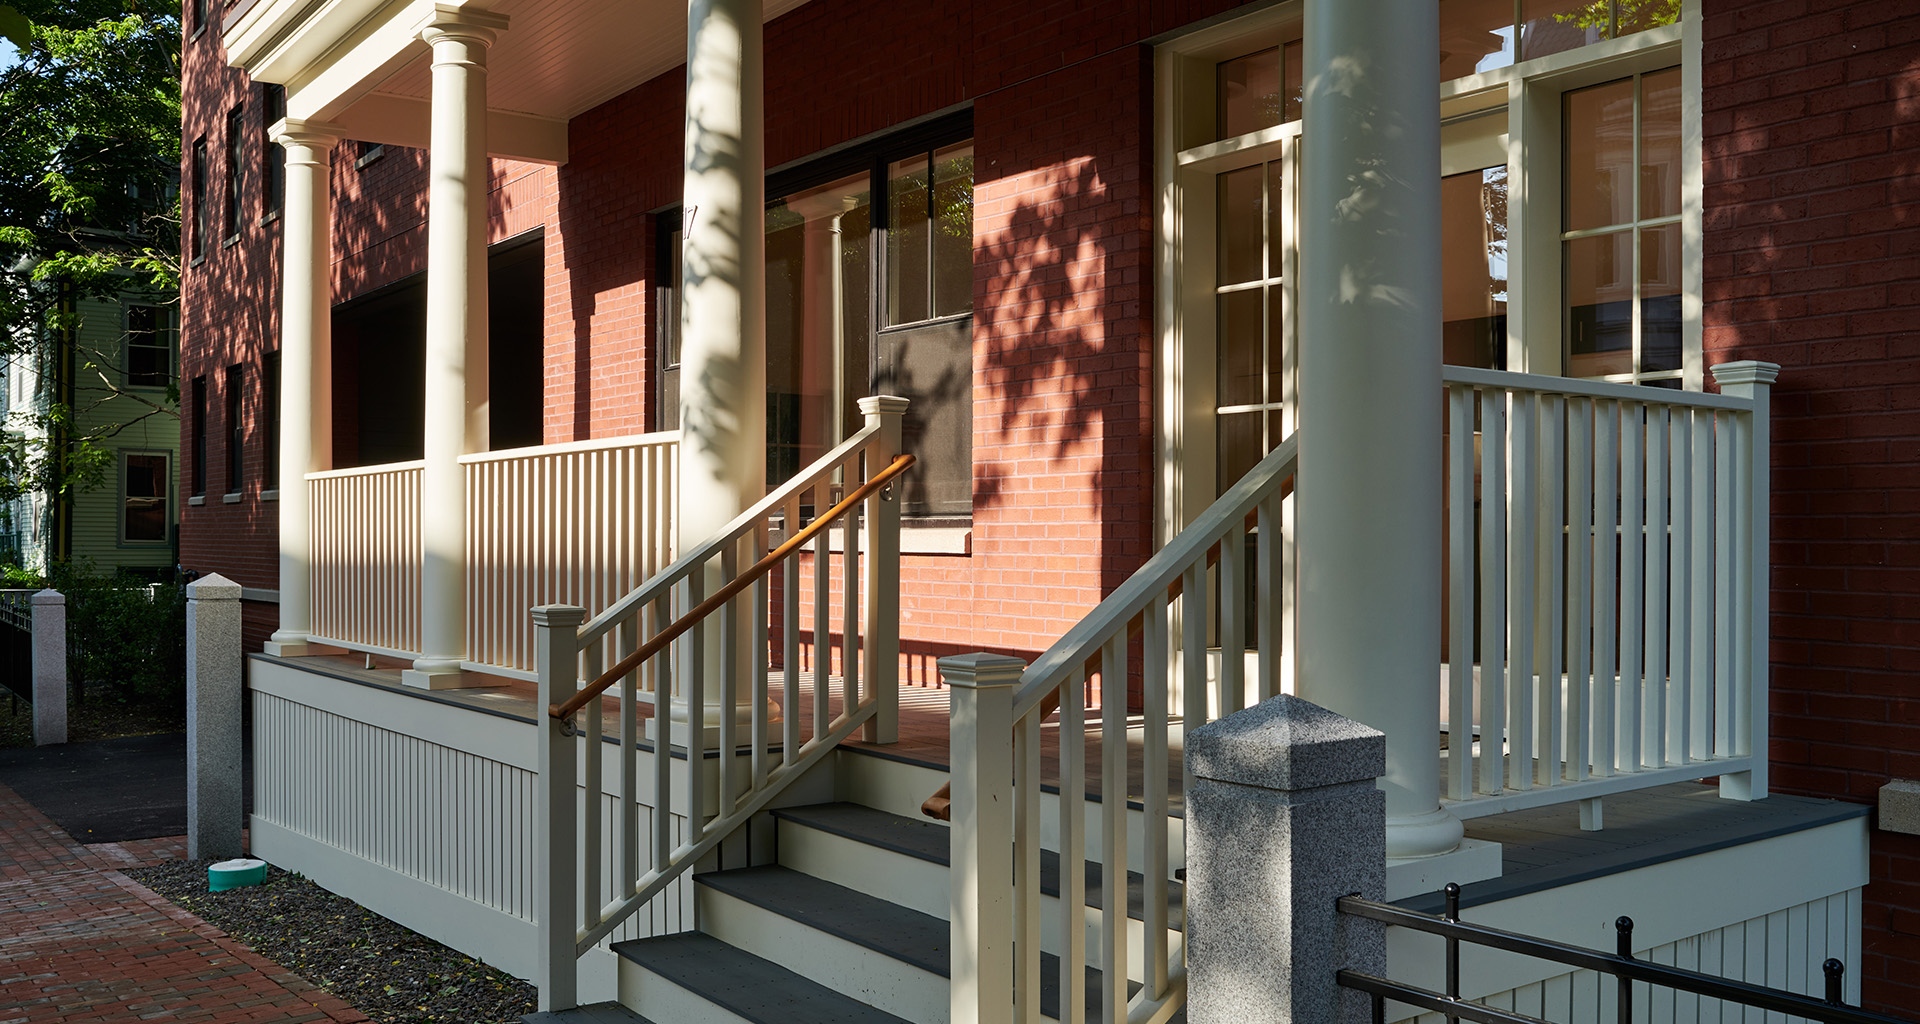 New affordable housing opens in Portland - Avesta Housing